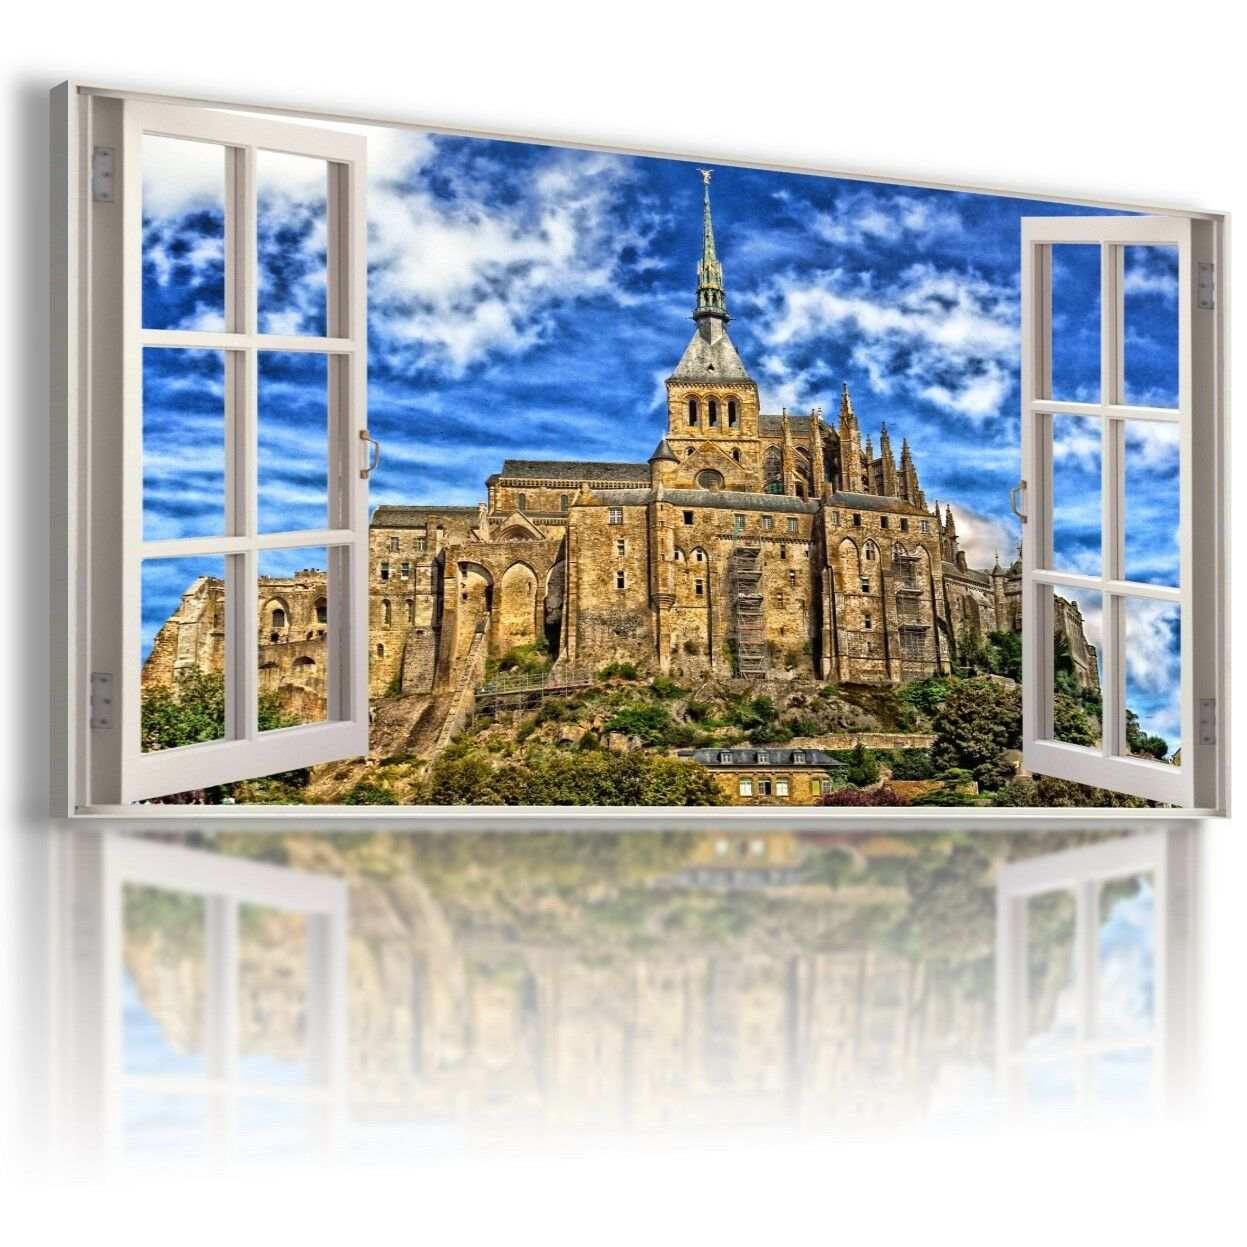 FRANCE CITY SUNRISE 3D Window View Canvas Wall Art Picture Large W414 MATAGA